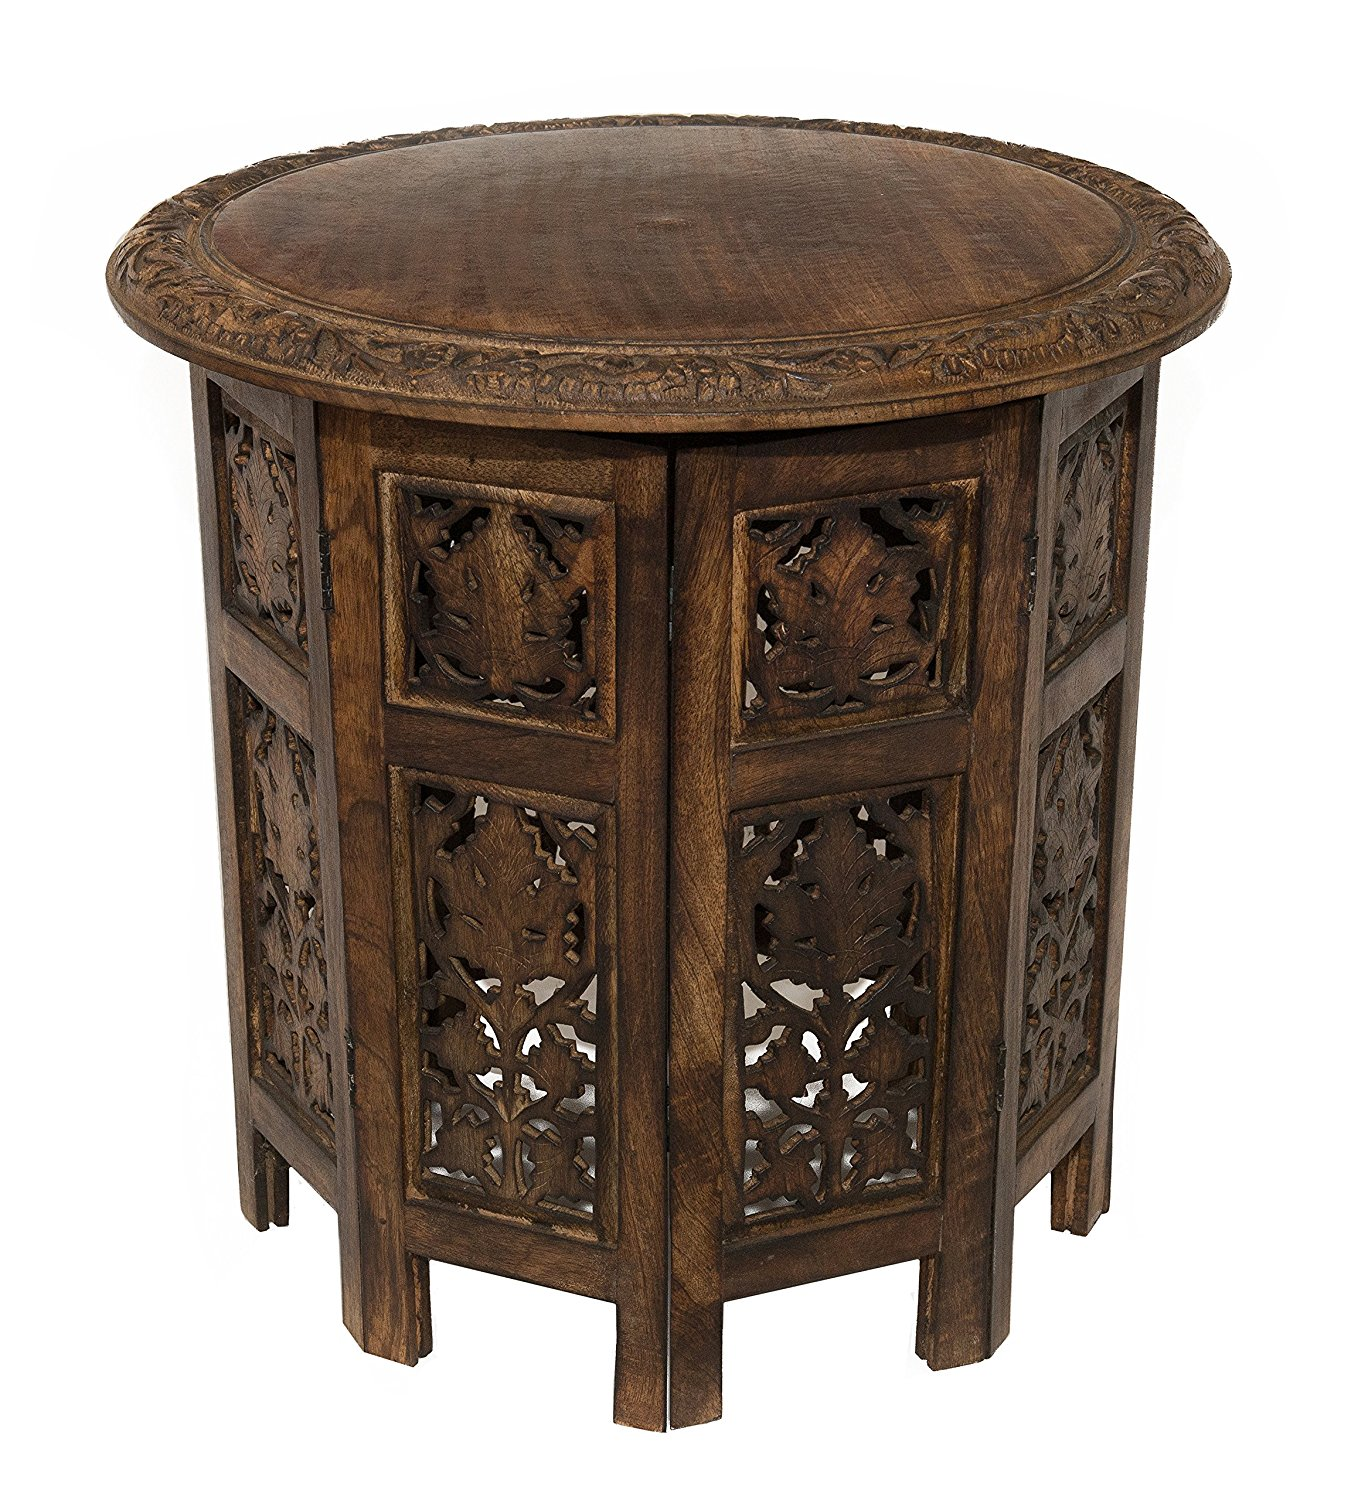 lovely small accent table for ornate round with drawer wooden glass decor white kitchen triangle end sauder storage cabinet laminate threshold ramp painted nesting tables nice bar